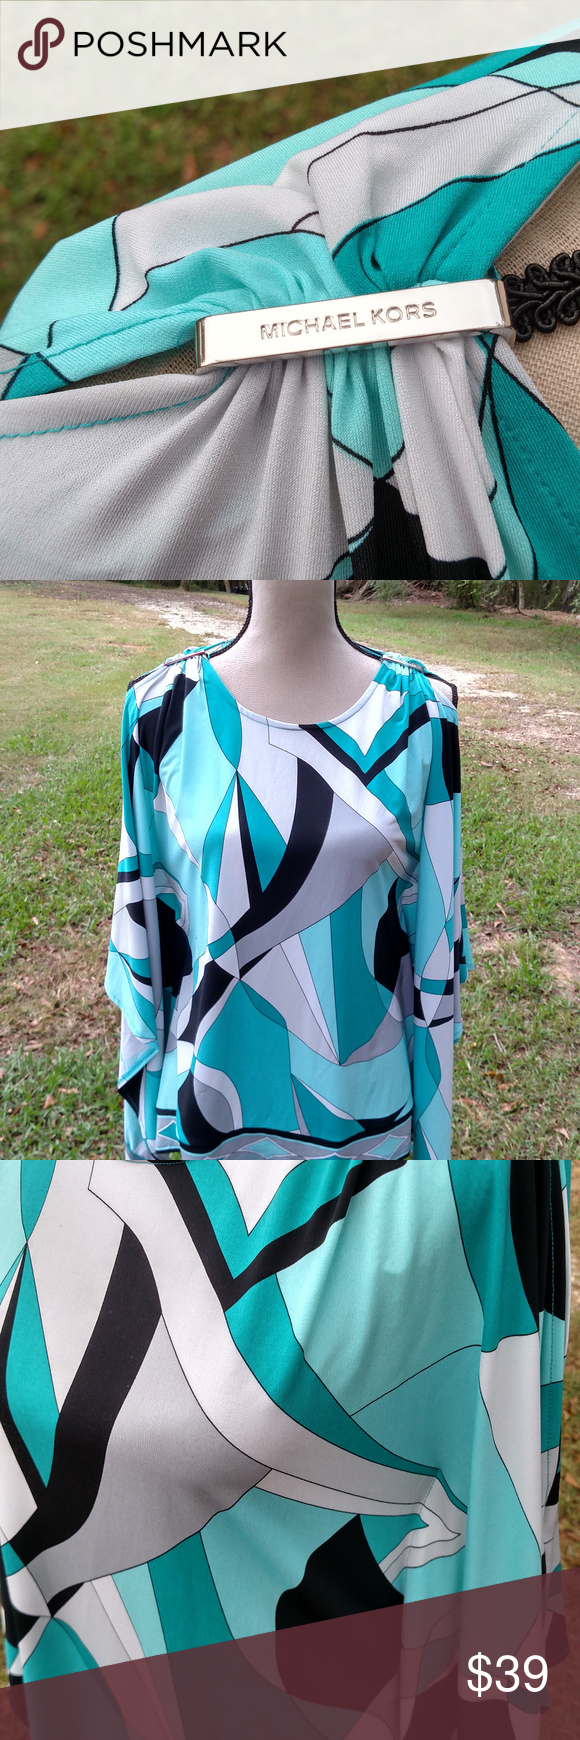 Michael Kors Womans Blouse Michael Kors Geometric Blouse/  Long Sleeves/ cold shoulder {slits down the arms for that sexy appeal}.  Polyester Blend.  Colors:  Black/Blue/Green/White.  Machine Wash Cold.  EUC.  Pair with your favorite Slacks/Jeans/Fashion Heels.  Scoop Neckline.  Adorable Gathers at the shoulder line gives this blouse chic appeal. Michael Kors Tops Blouses